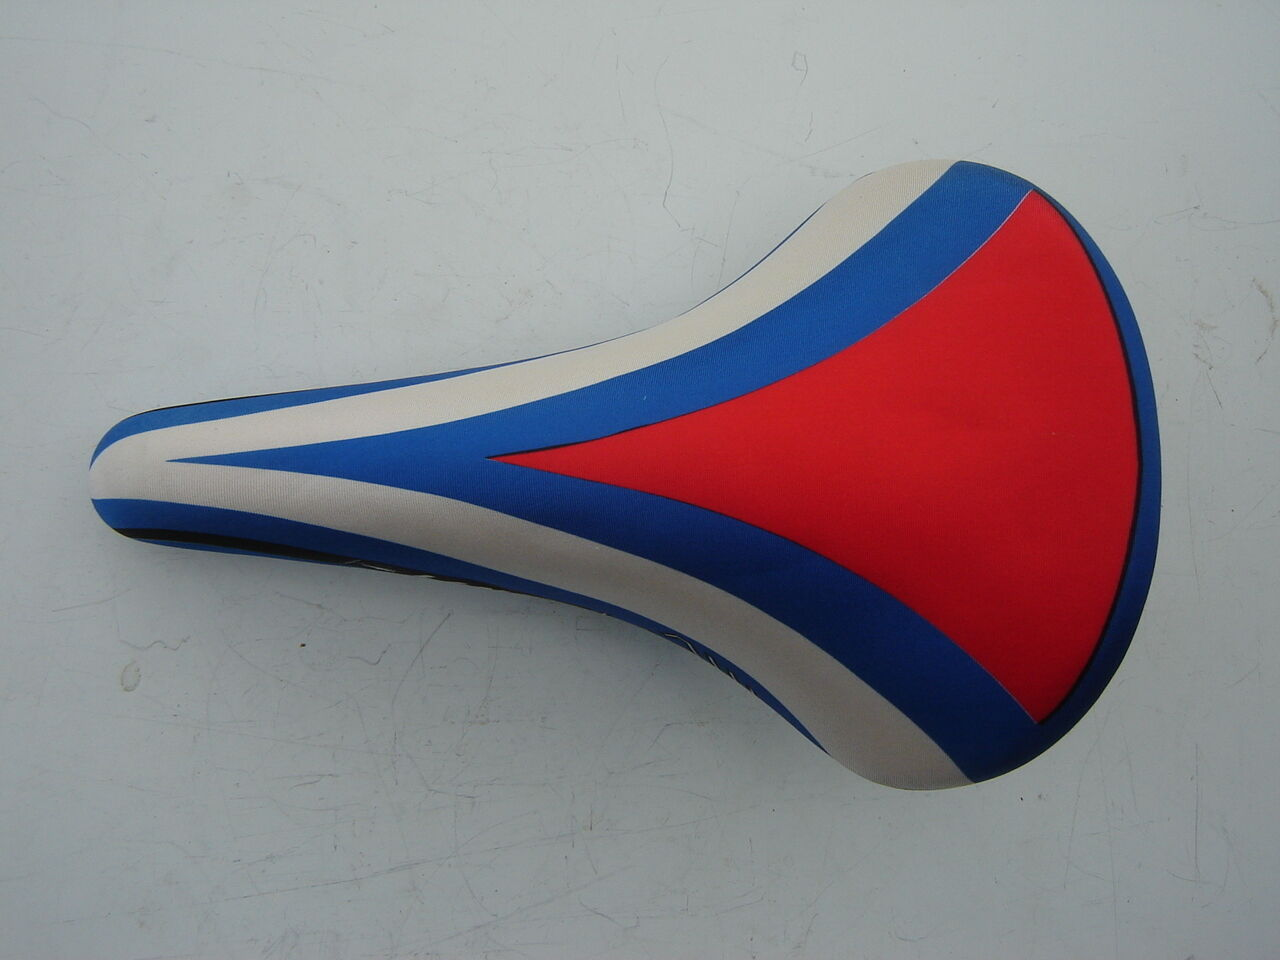 SAN  MARCO LINEA RACE SADDLE - NOS  fast shipping to you